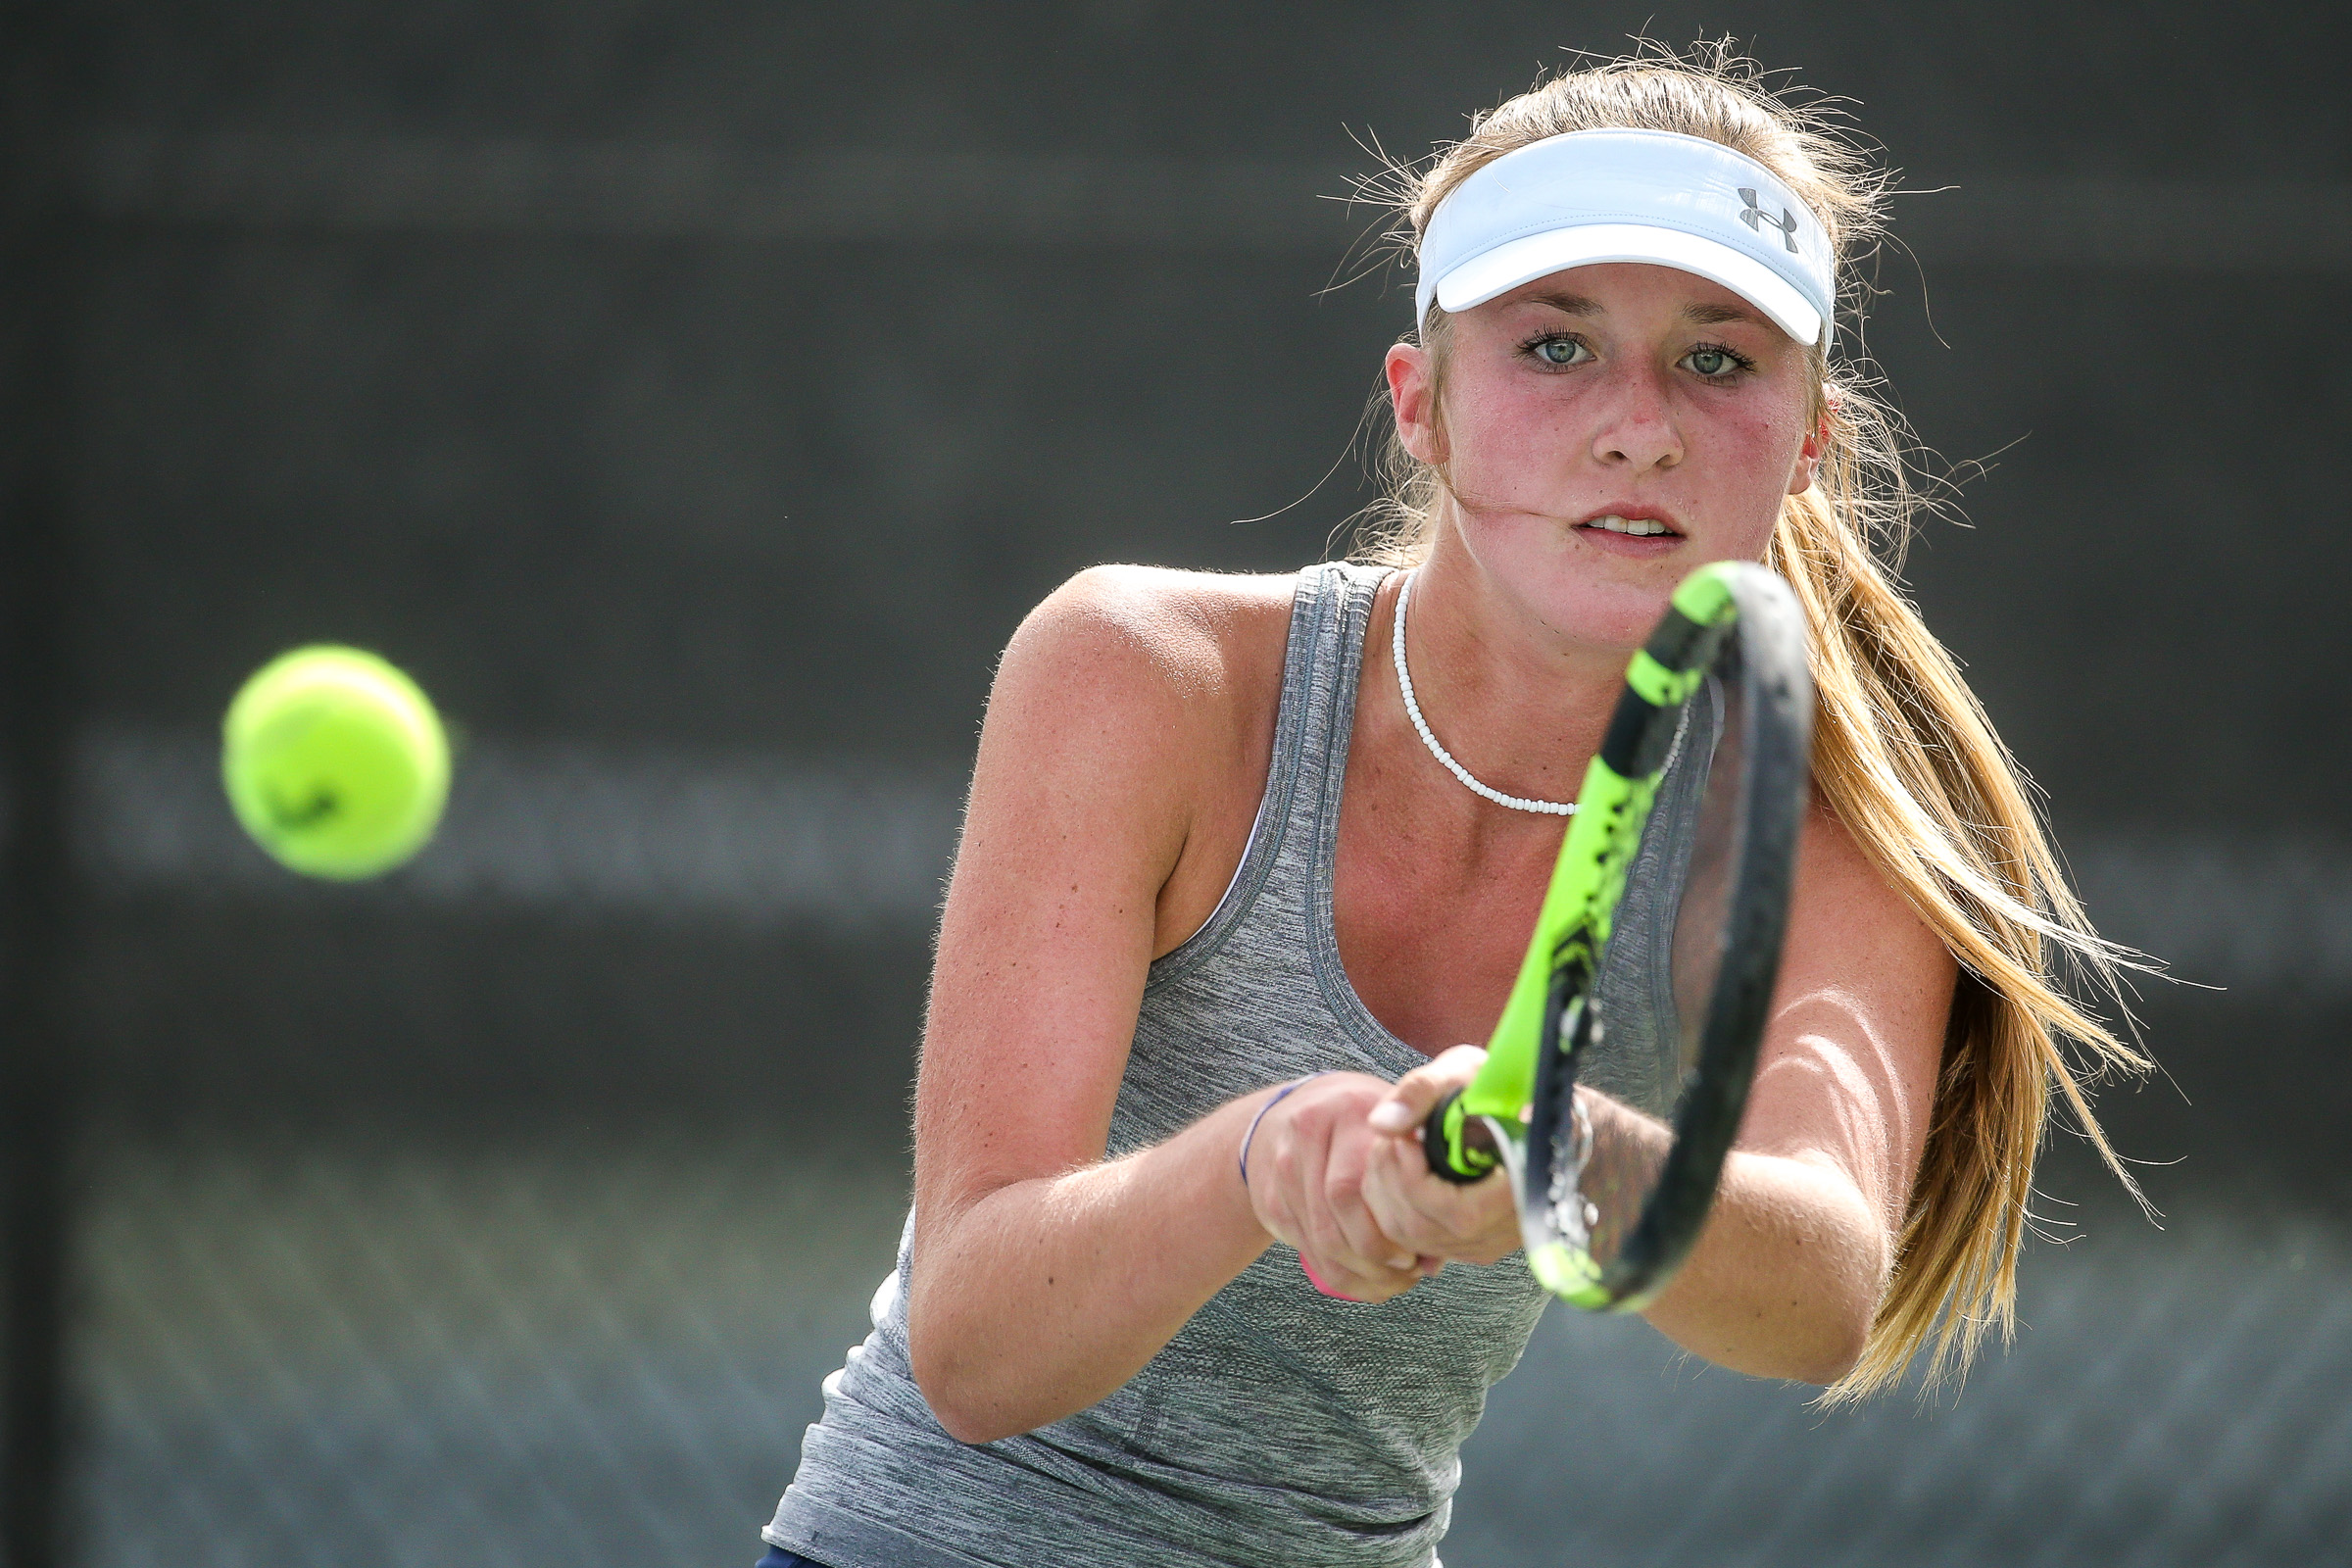 Ridgeline's Madi Brenchley competes in the No. 3 singles championship match against Park City's Brooklyn Thompson during the 4A state tennis tournament at the Liberty Park Tennis Center in Salt Lake City on Saturday, Sept. 29, 2018.